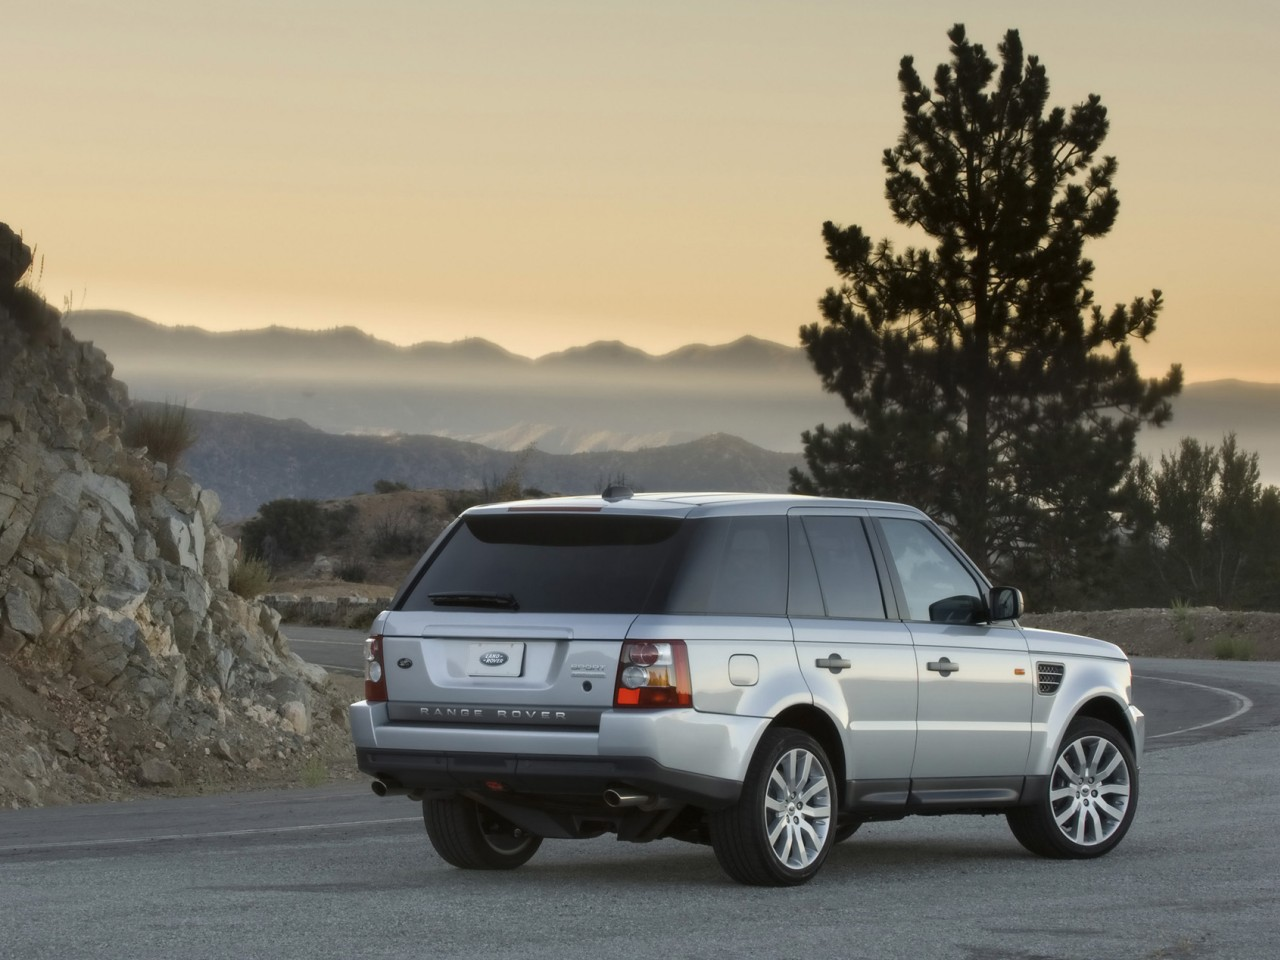 2008 land rover range rover sport pictures specifications interiors and exteriors pictures. Black Bedroom Furniture Sets. Home Design Ideas